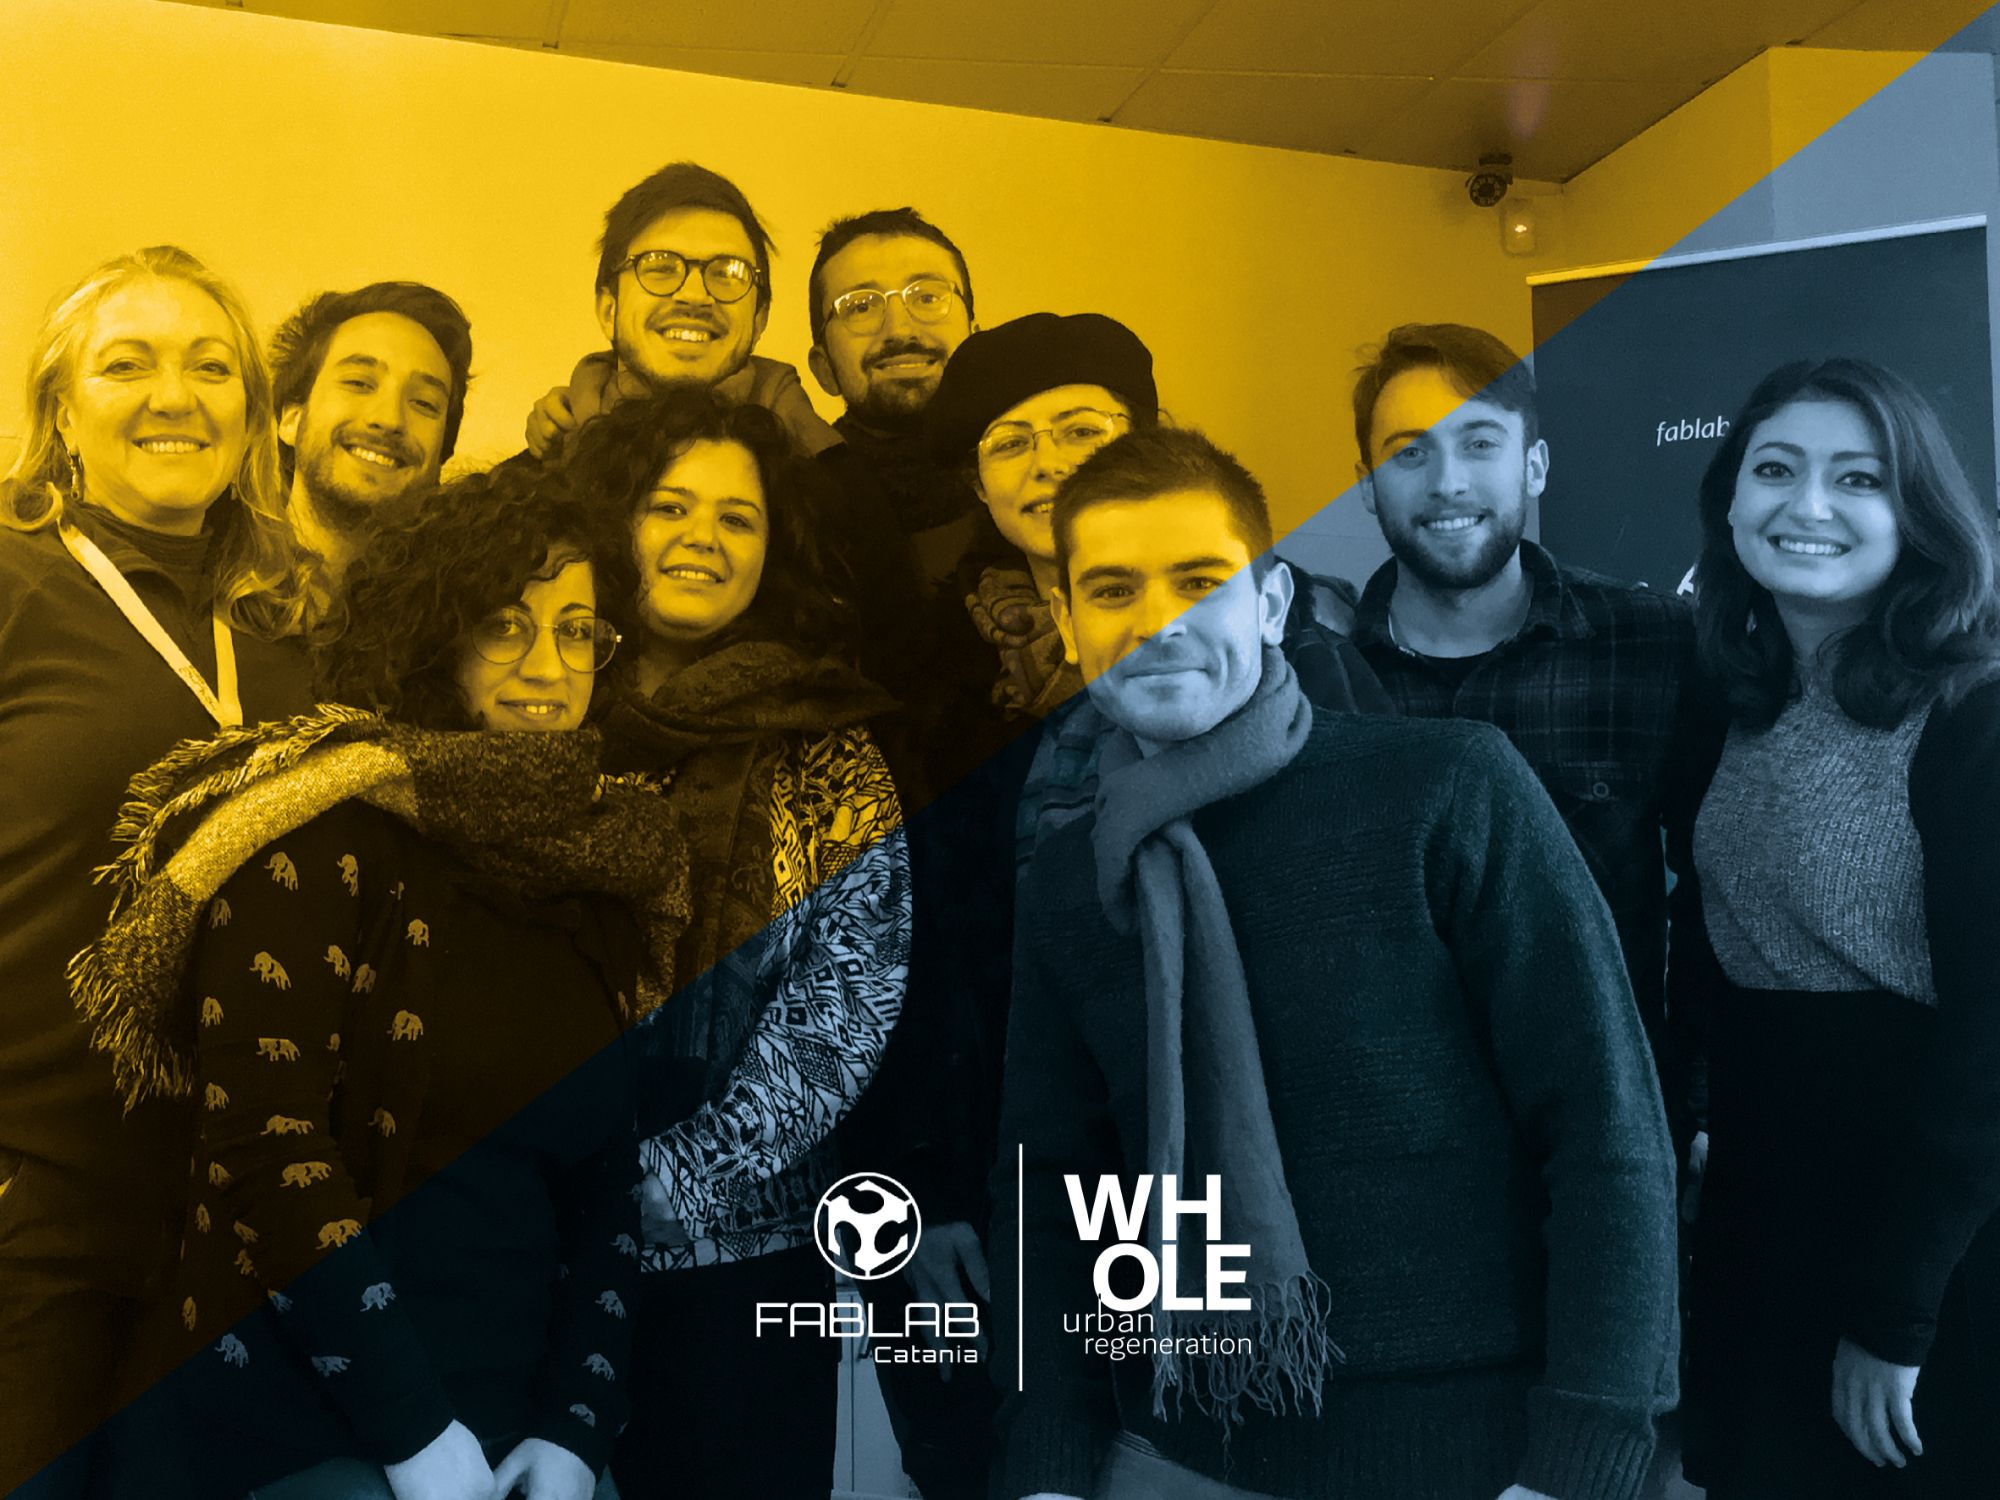 Whole-Urban Regeneration & Fablab Catania